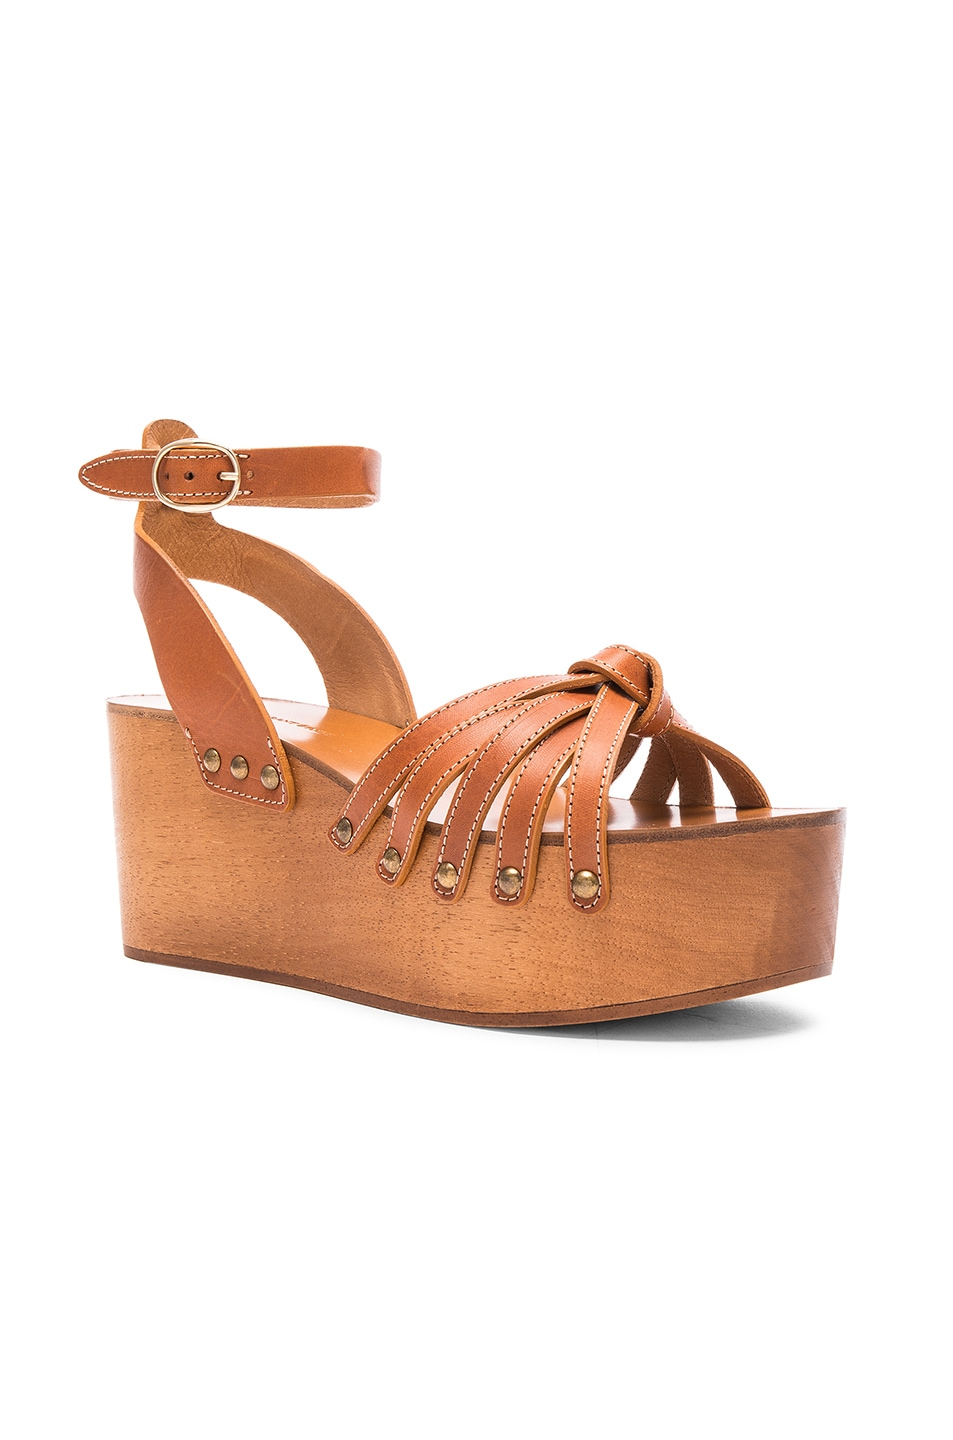 Image 2 of Isabel Marant Etoile Zia Leather Wedge Sandals in Tan